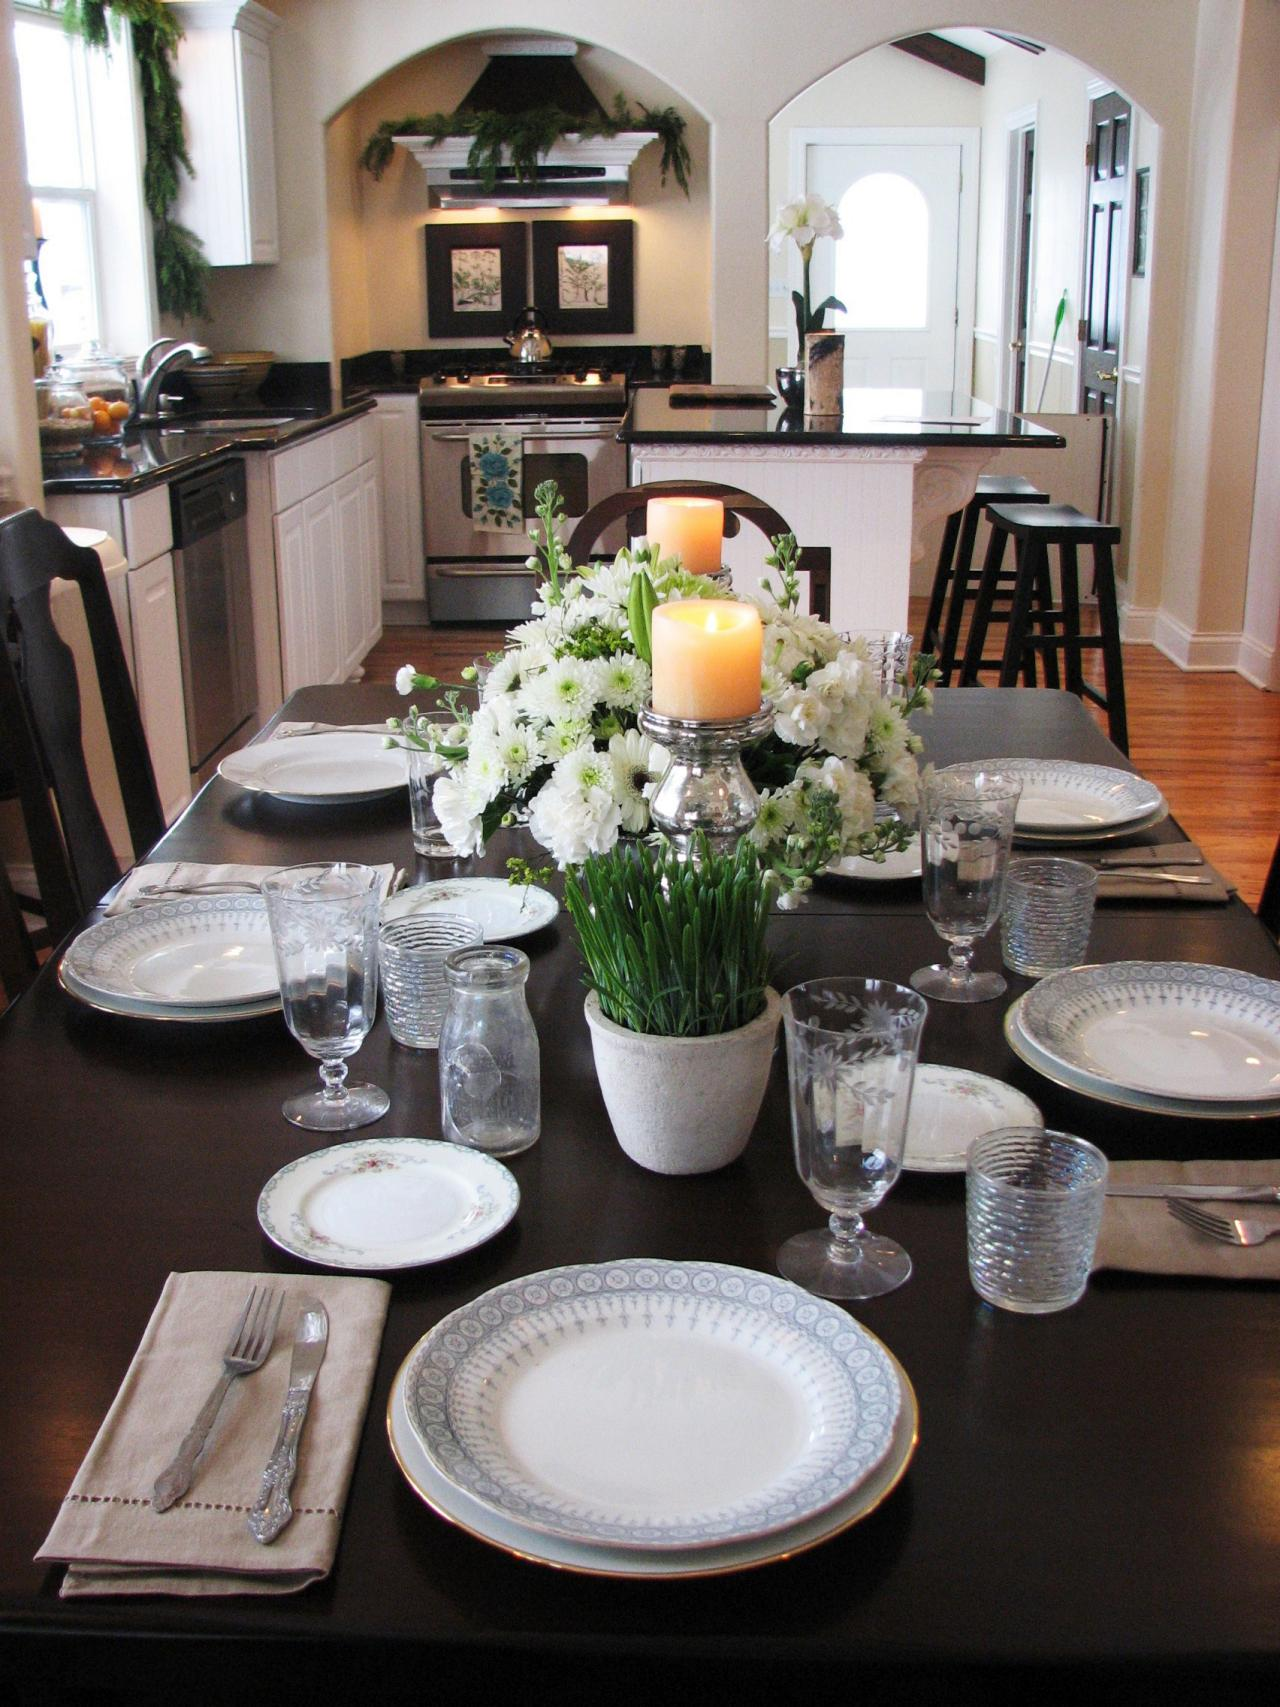 Kitchen table centerpiece design ideas hgtv pictures hgtv for Small kitchen table centerpiece ideas